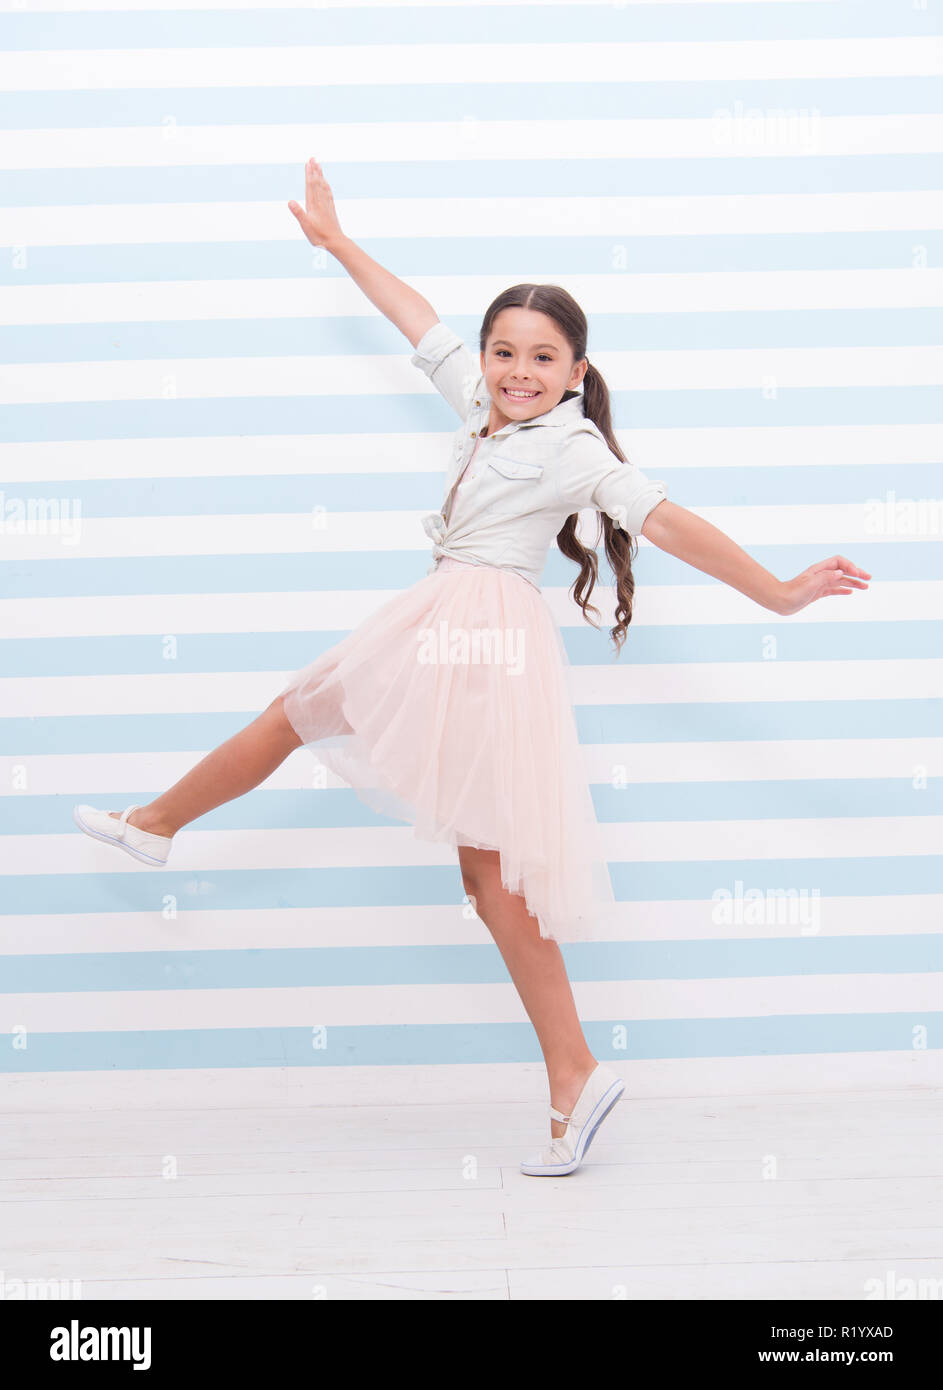 Child concept. Happy little child dancing. Child girl smile in fashion dress. Child and childhood. sense of freedom. - Stock Image